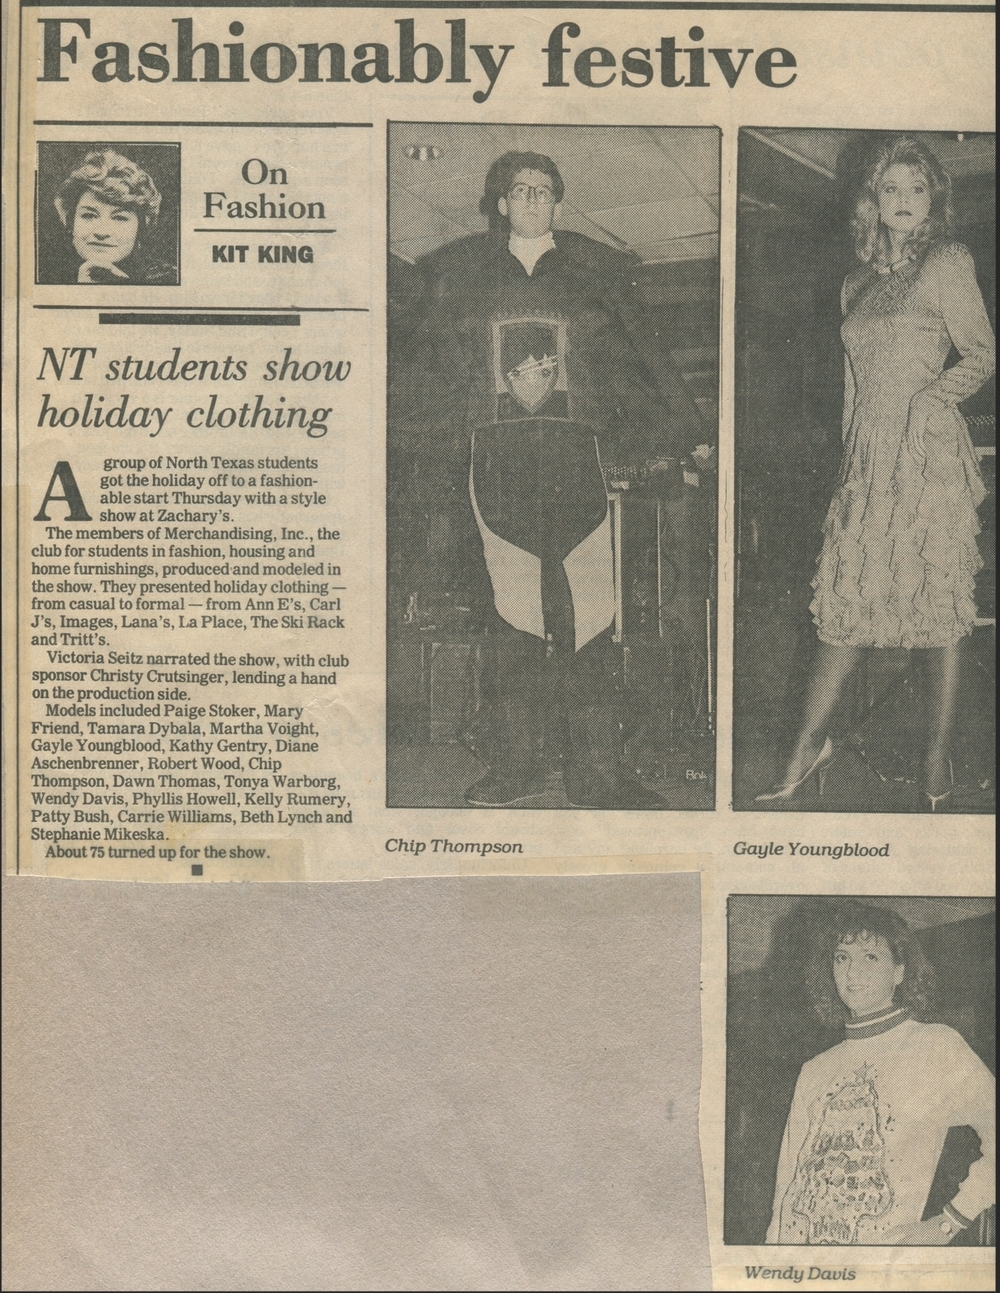 """NT students show holiday clothing"" (1988)- Kit King"